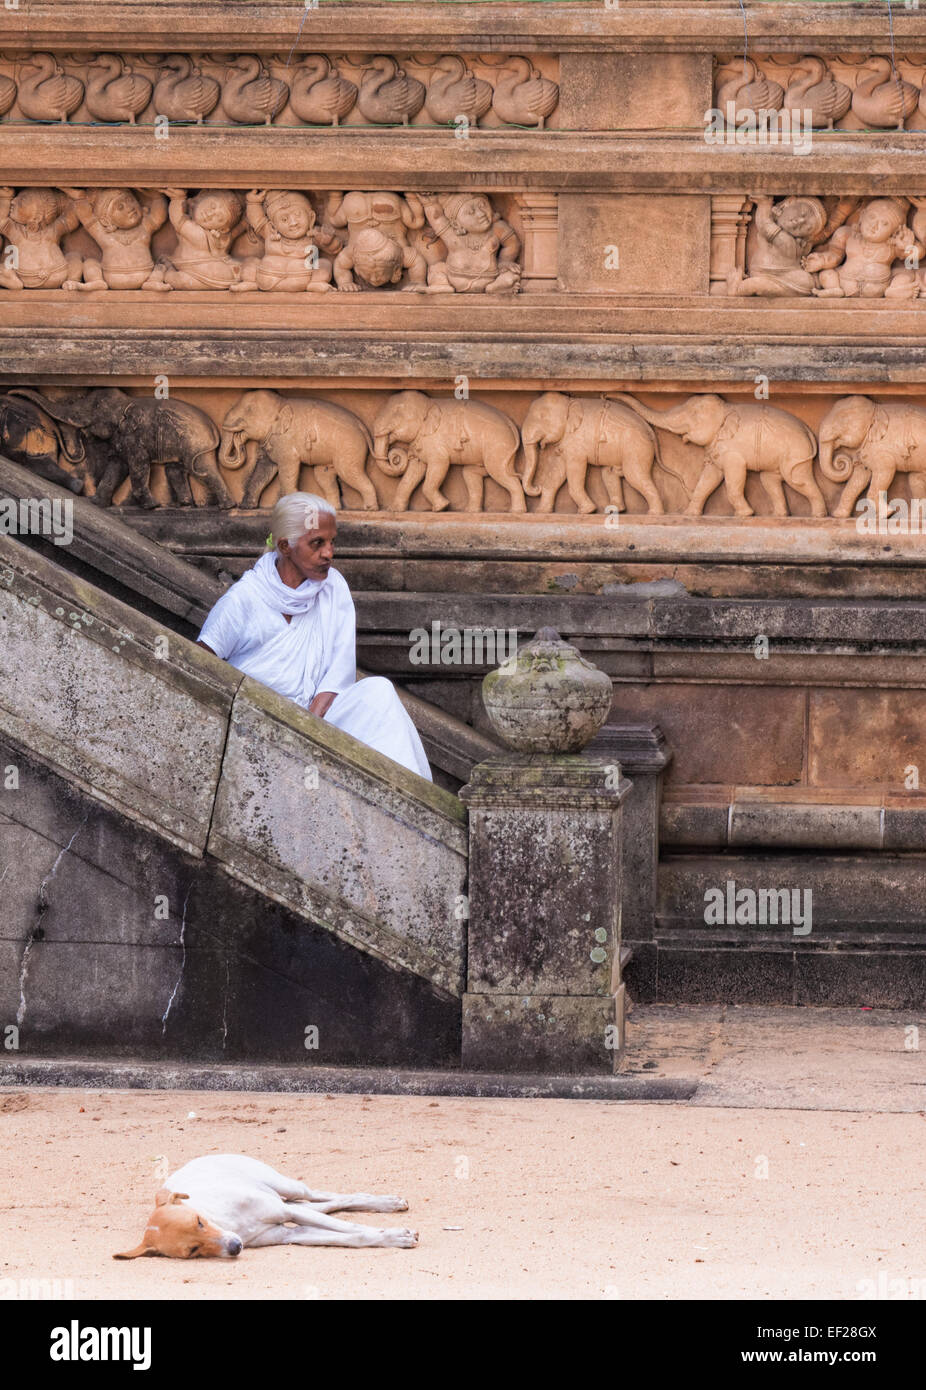 A robed figure sits on the steps outside the New Temple House at the Buddhist Kelaniya Temple, Colombo, Sri Lanka - Stock Image